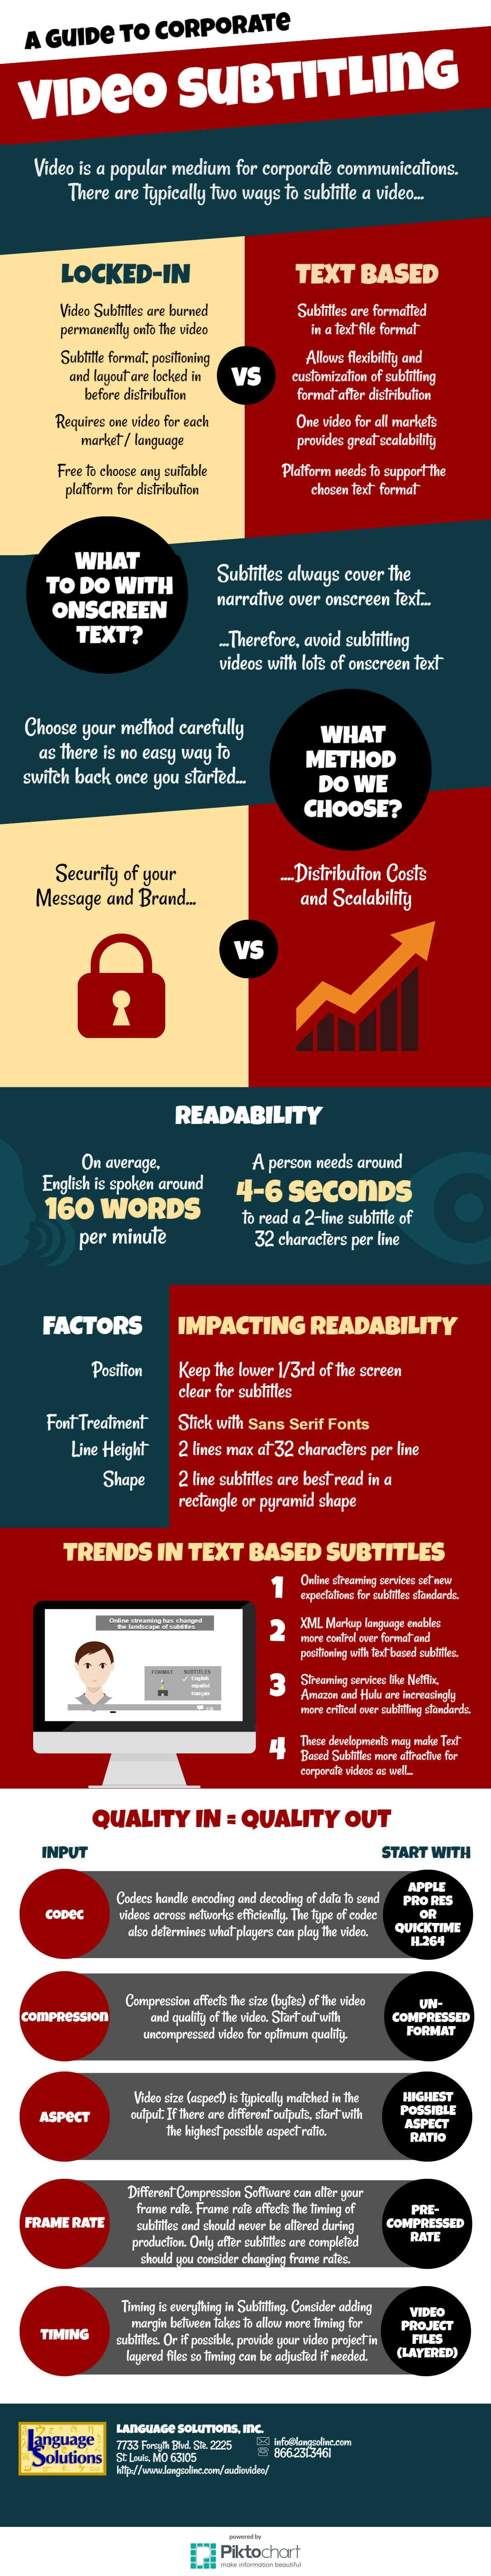 Infographic on Corporate Video Subtitling Services